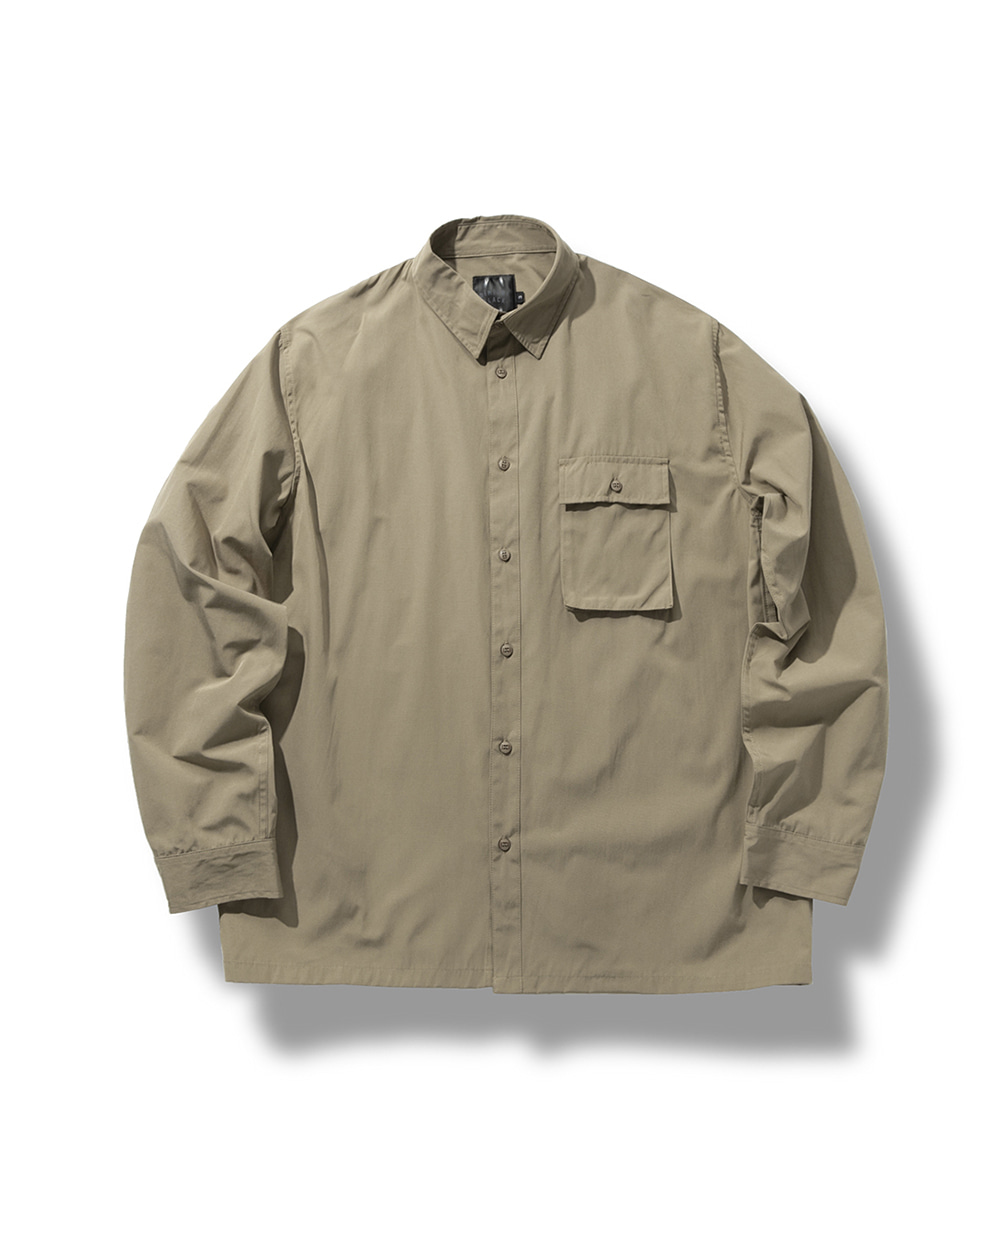 C/P SHIRTS JACKET BEIGE